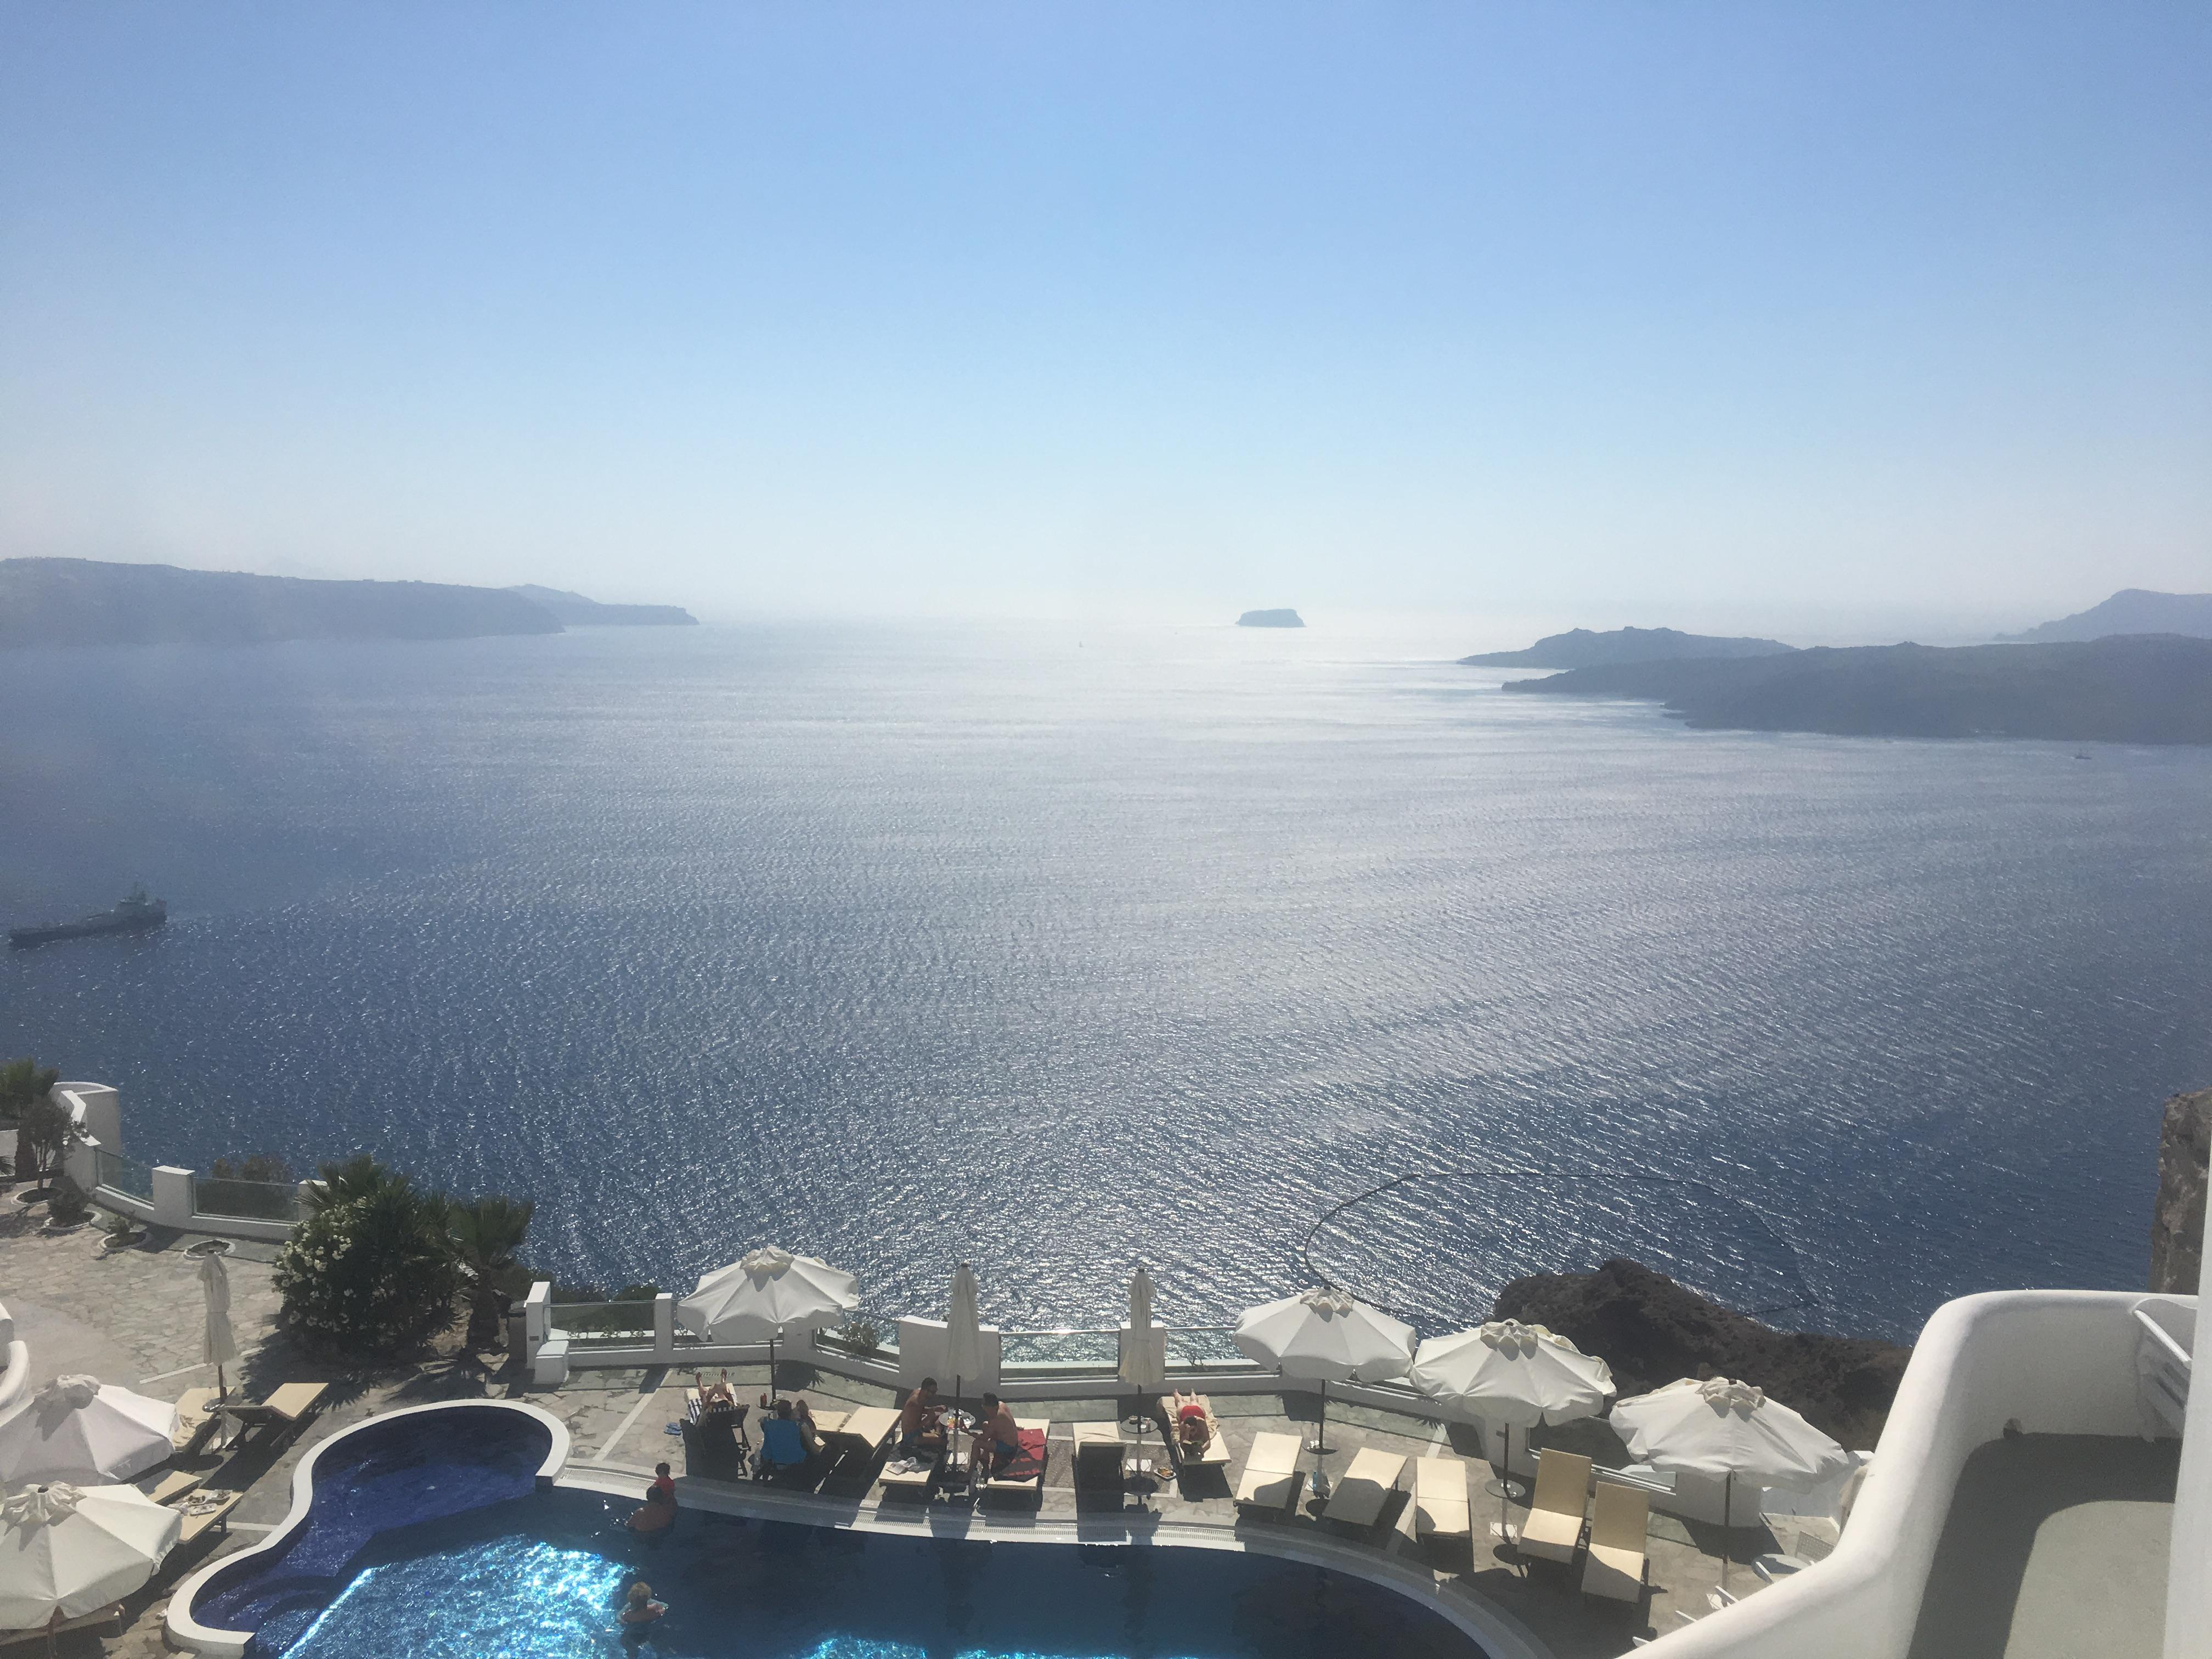 Hotel pool and view